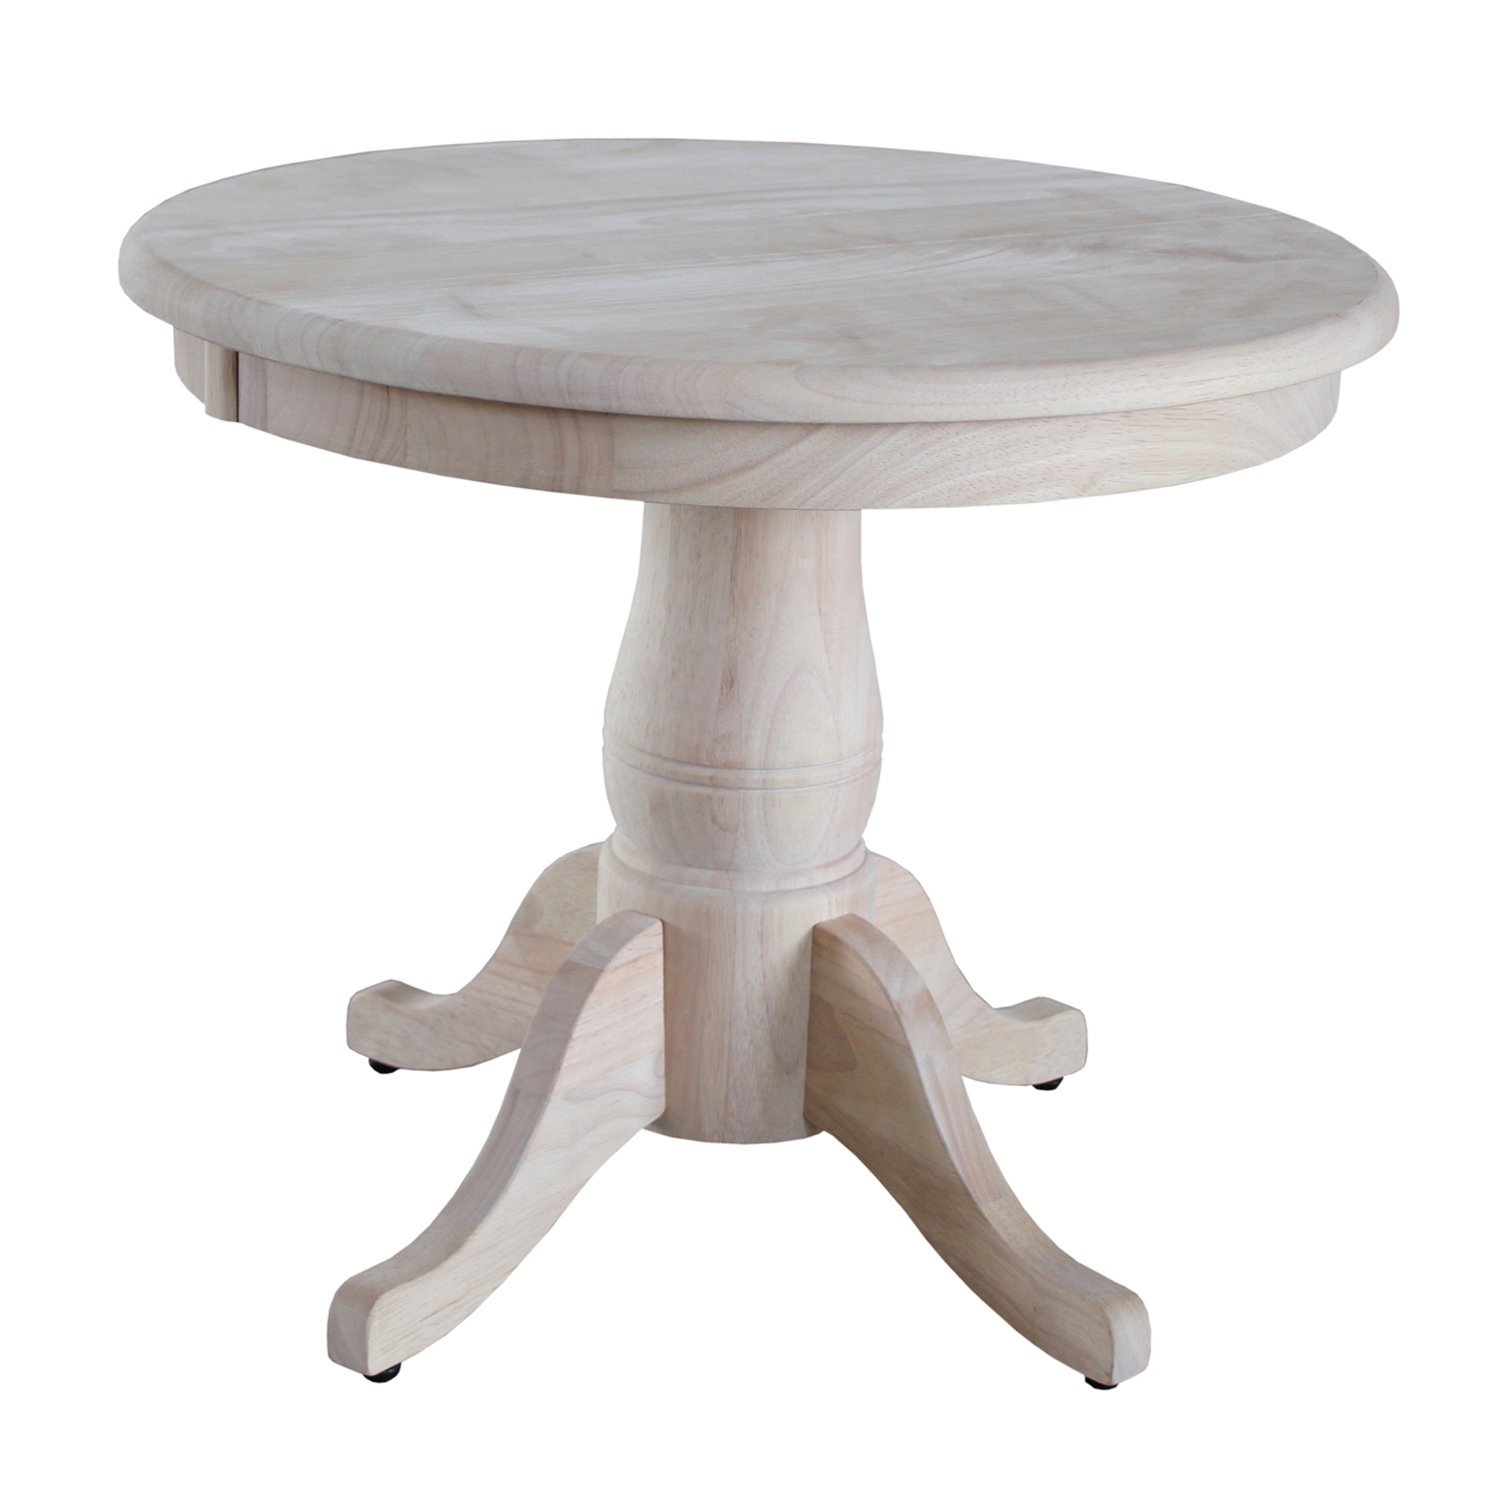 International Concepts Unfinished Round Pedestal Table, 22-Inch